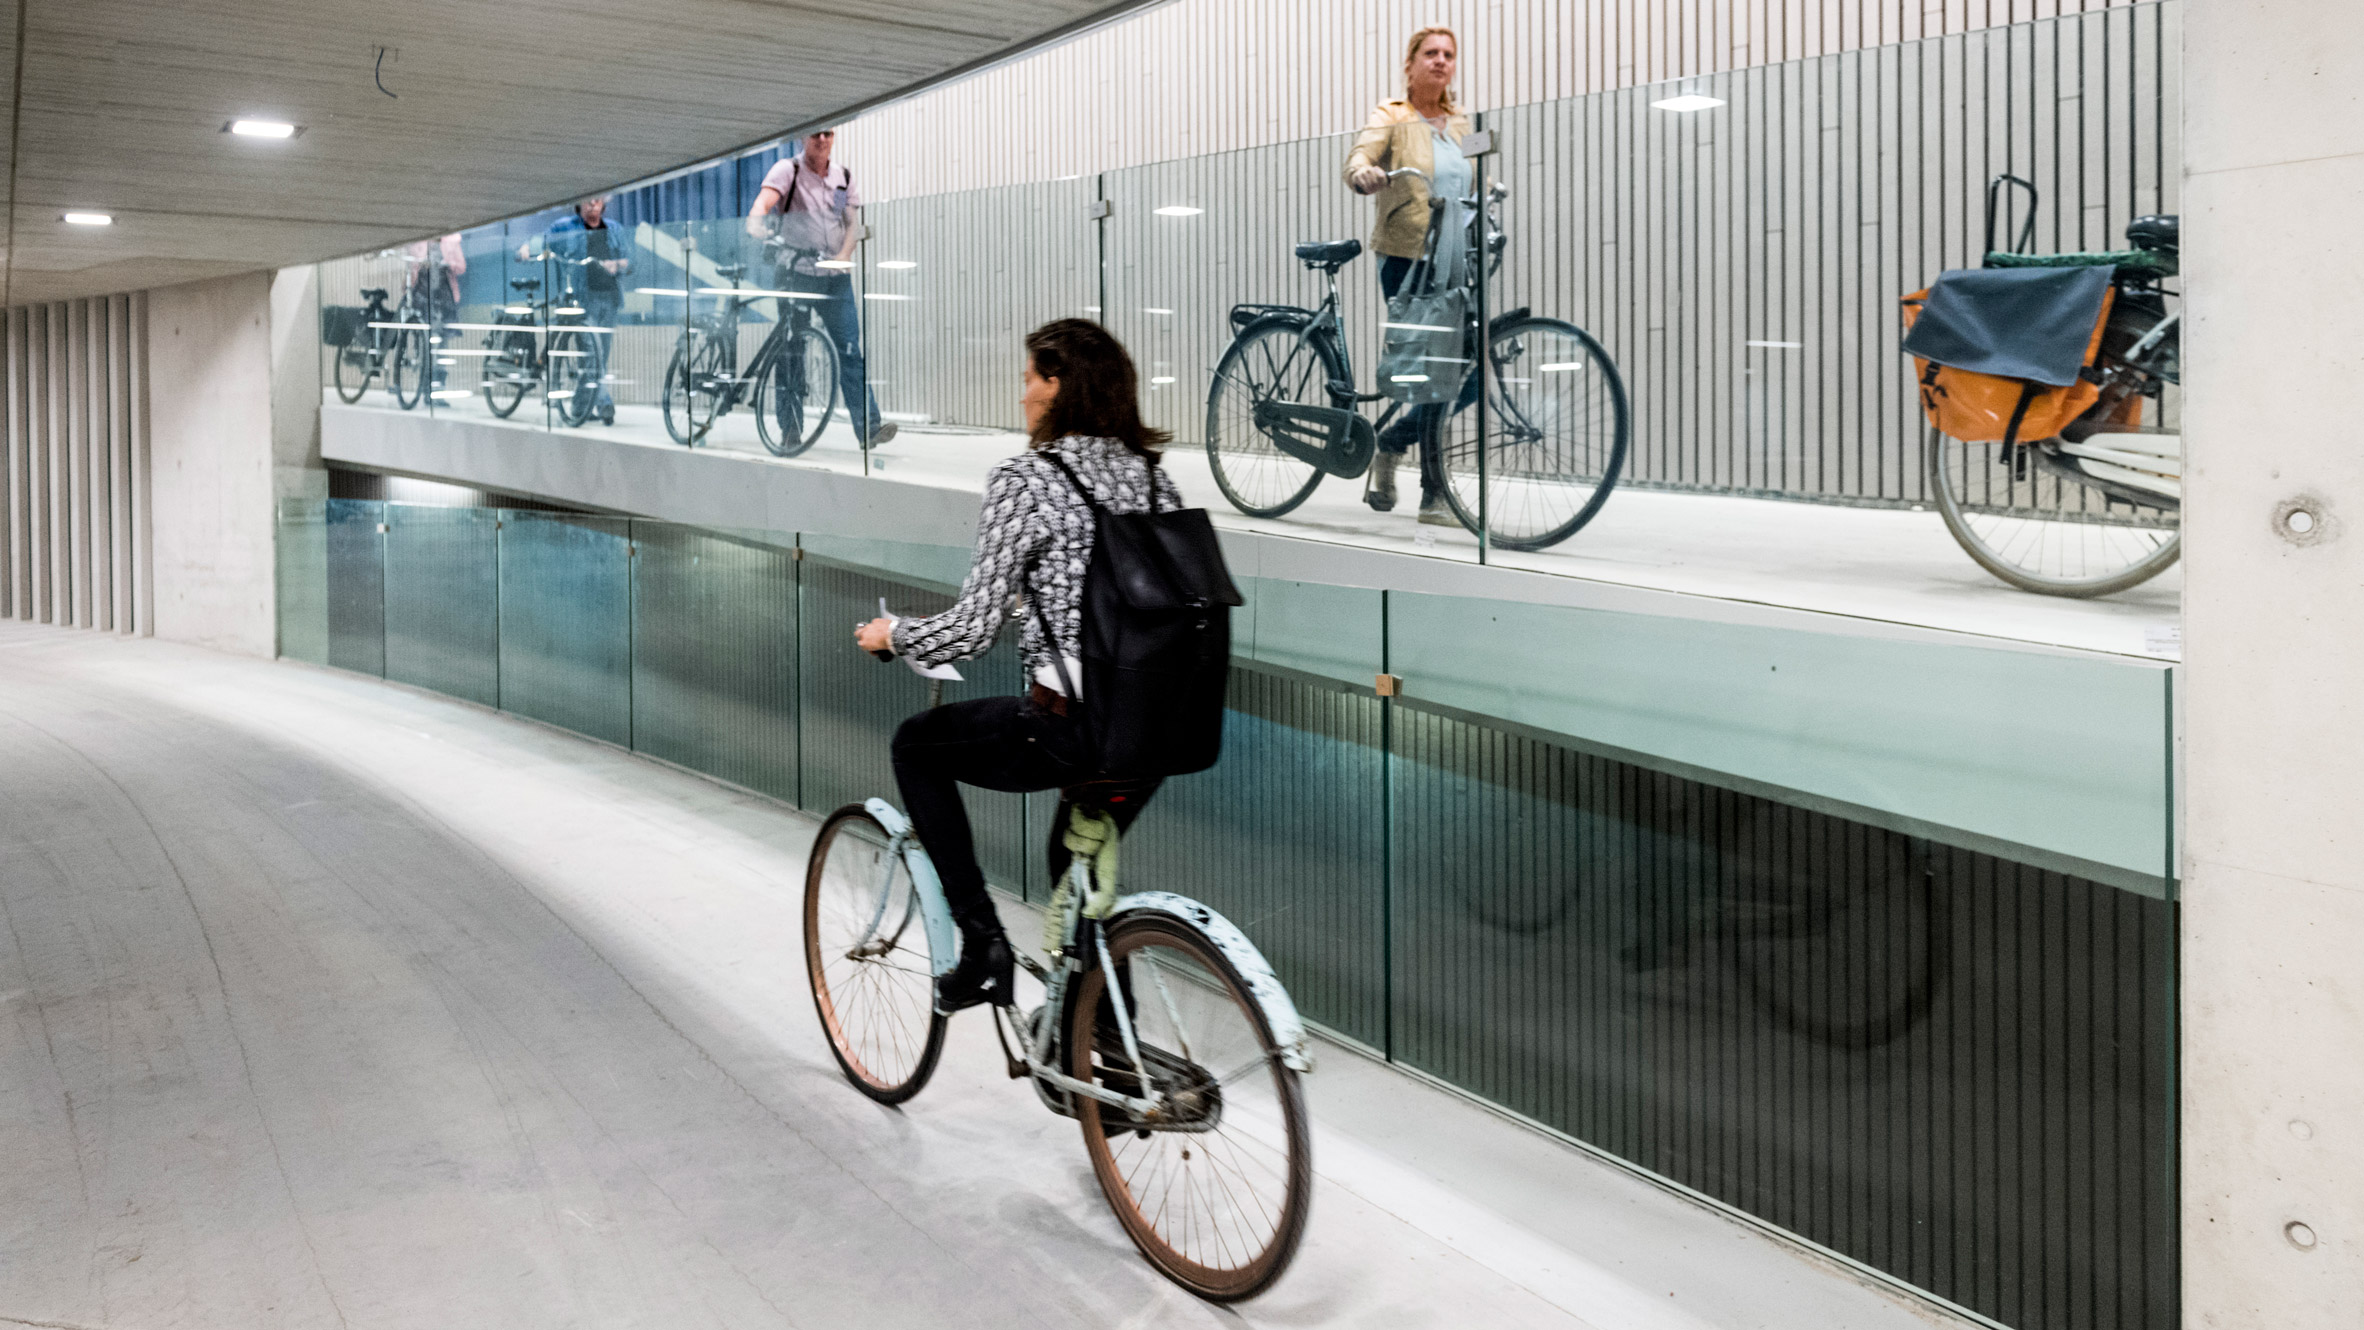 Garage Journal Bike Storage World S Largest Bicycle Parking Garage Opens In Utrecht